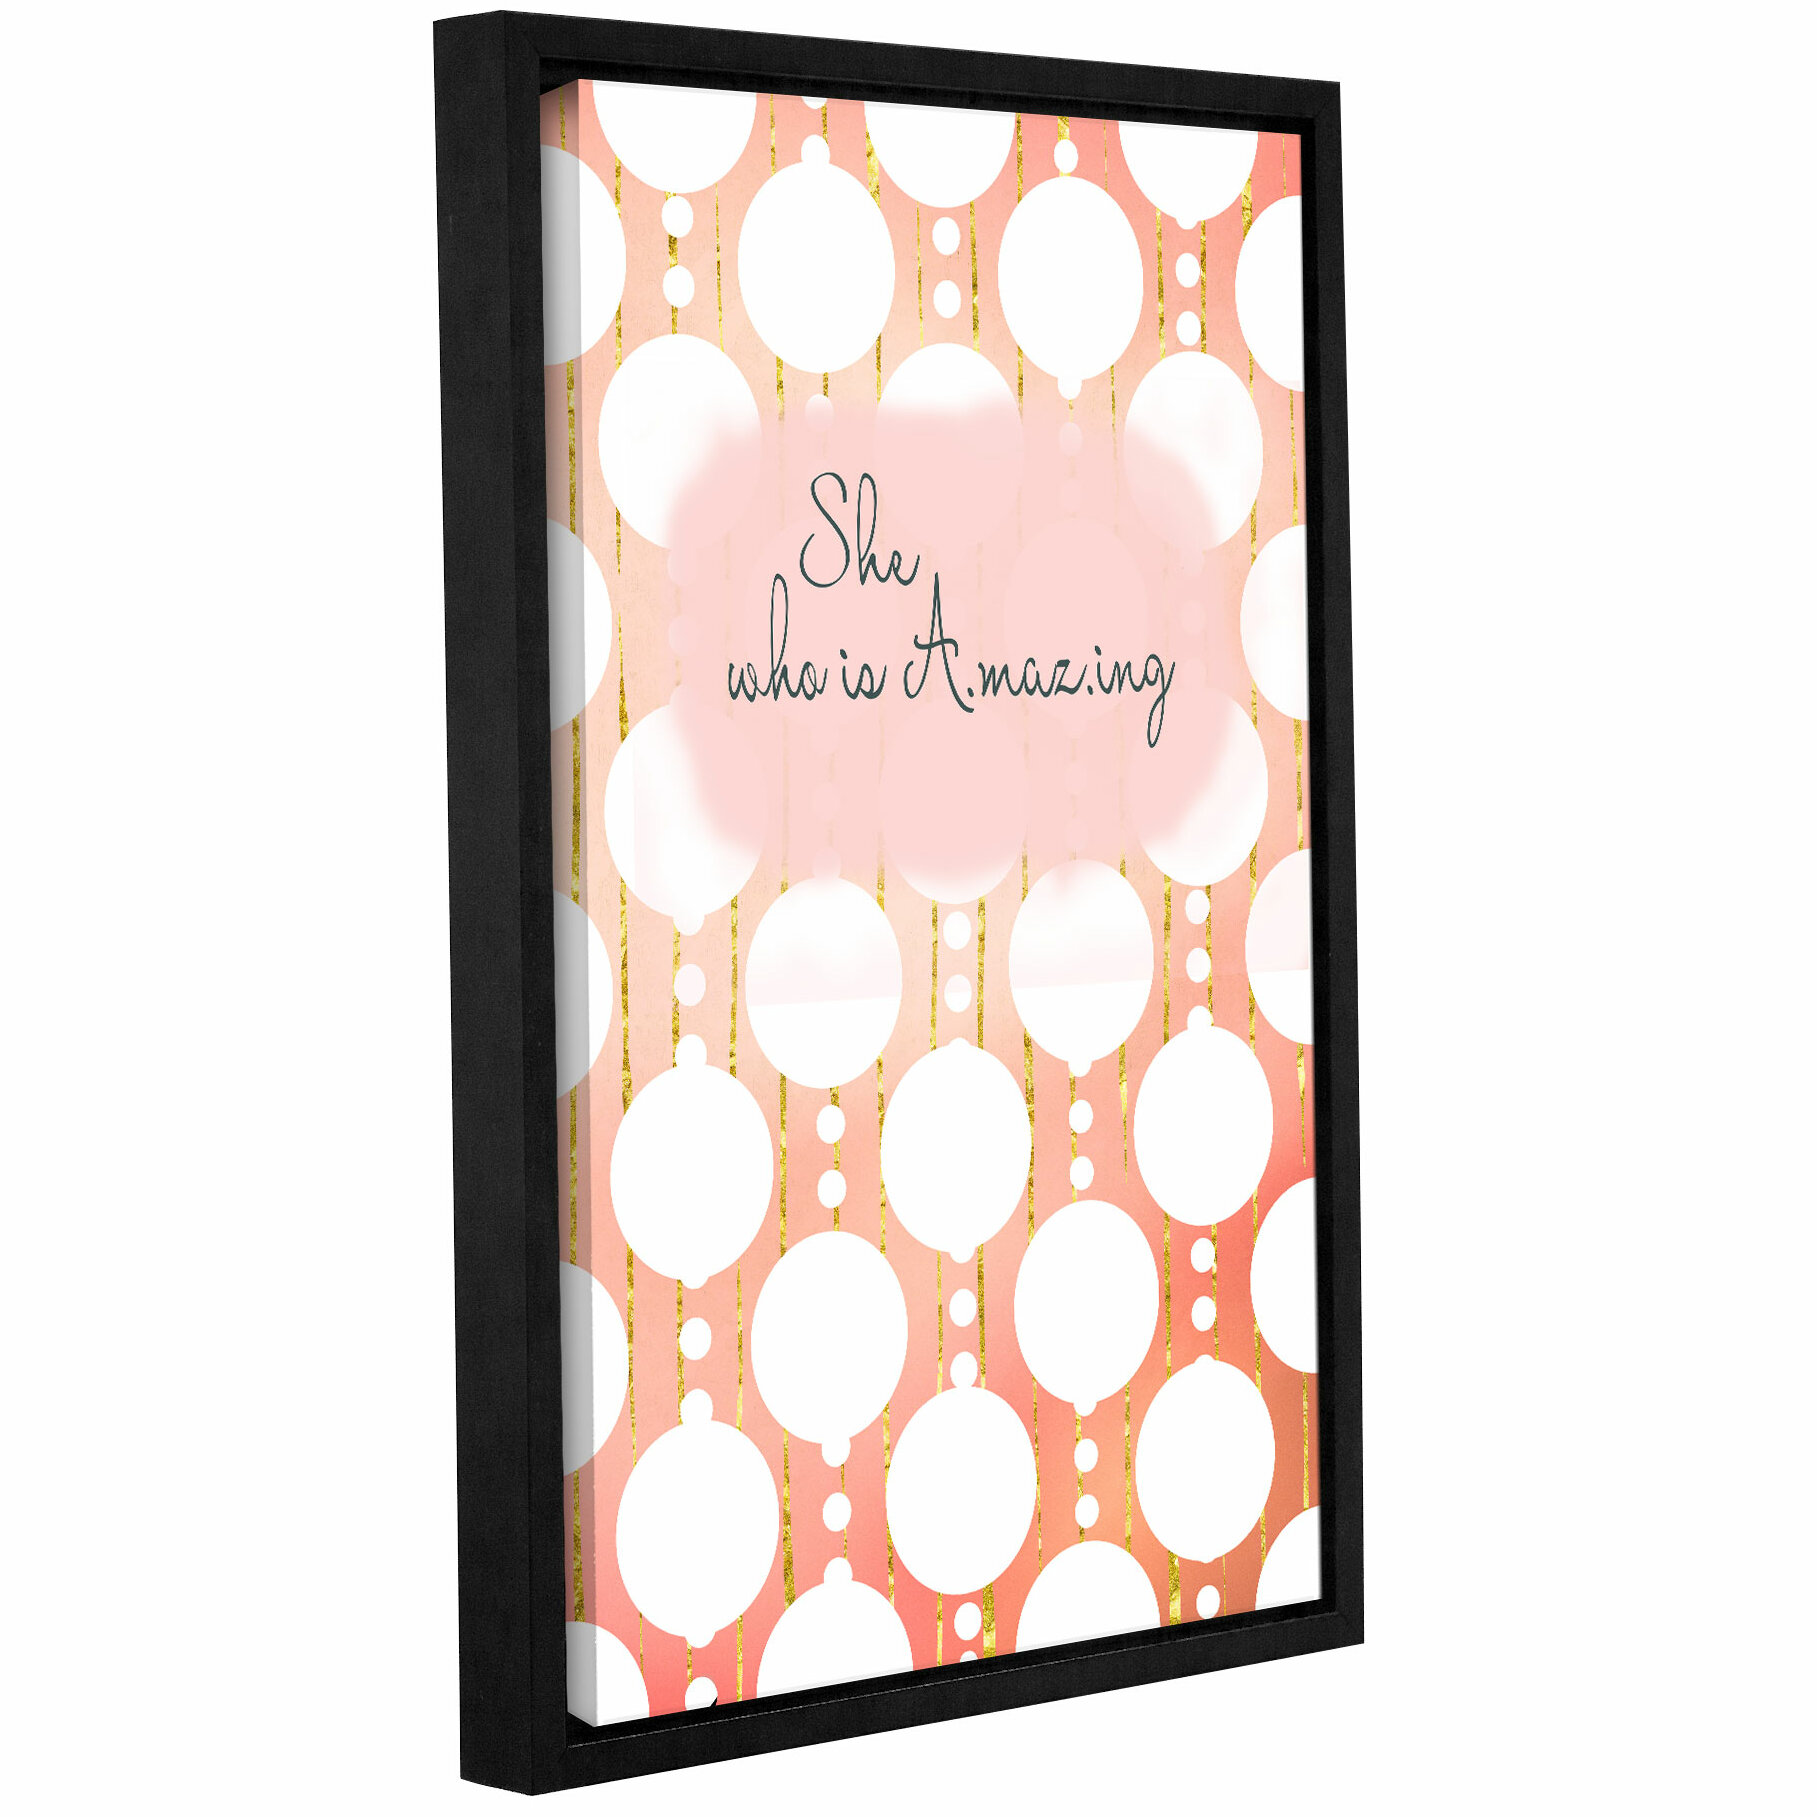 Ebern Designs She Who Is Amazing Framed Textual Art On Wrapped Canvas Wayfair